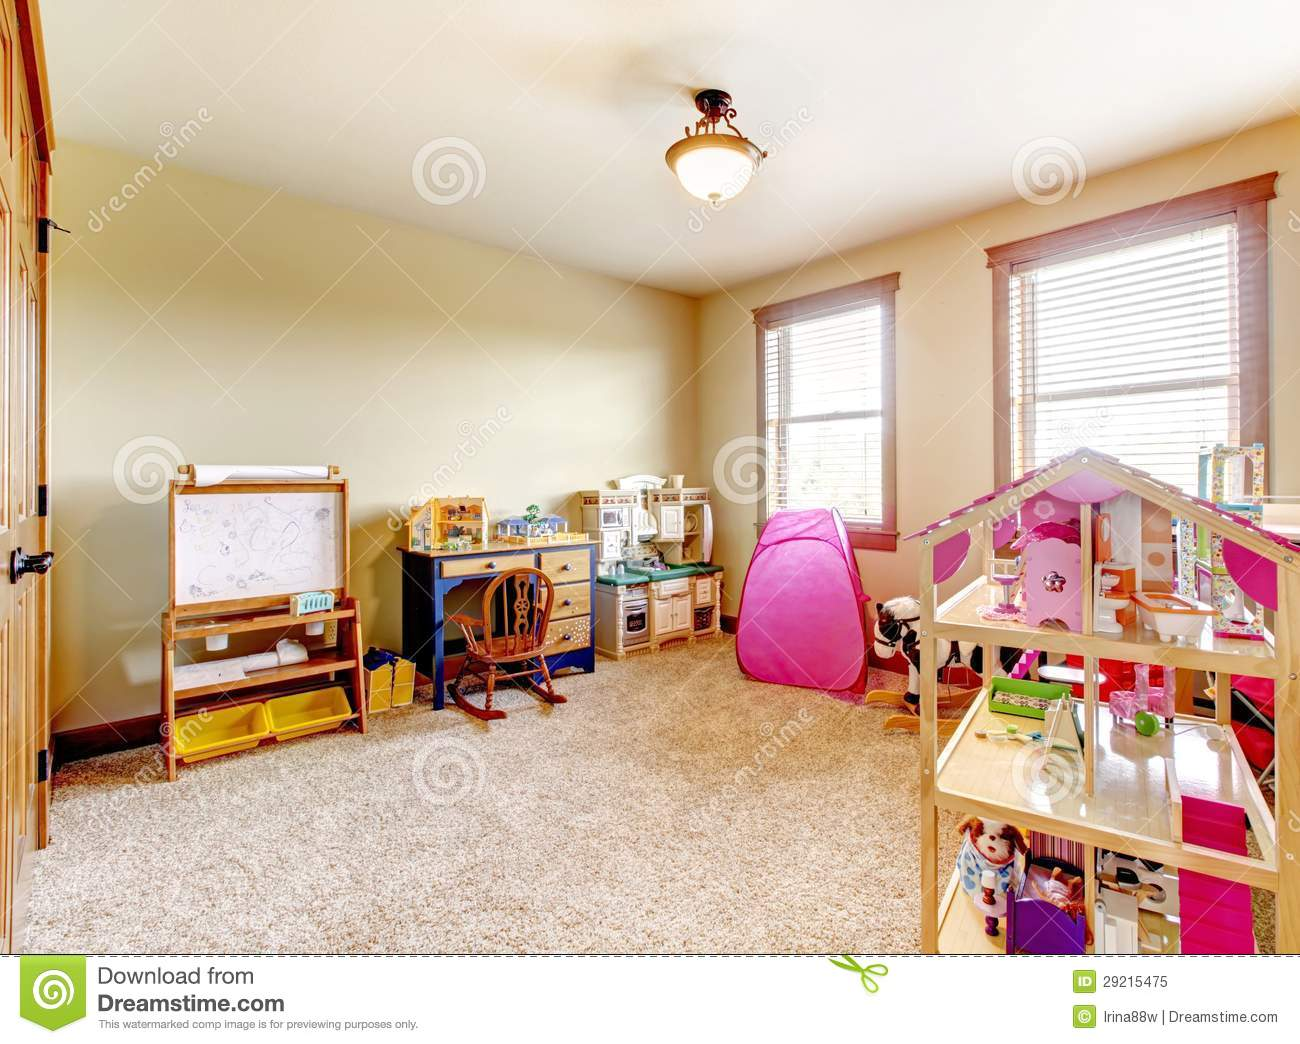 Kids play room with toys interior stock image image for Kids toy rooms